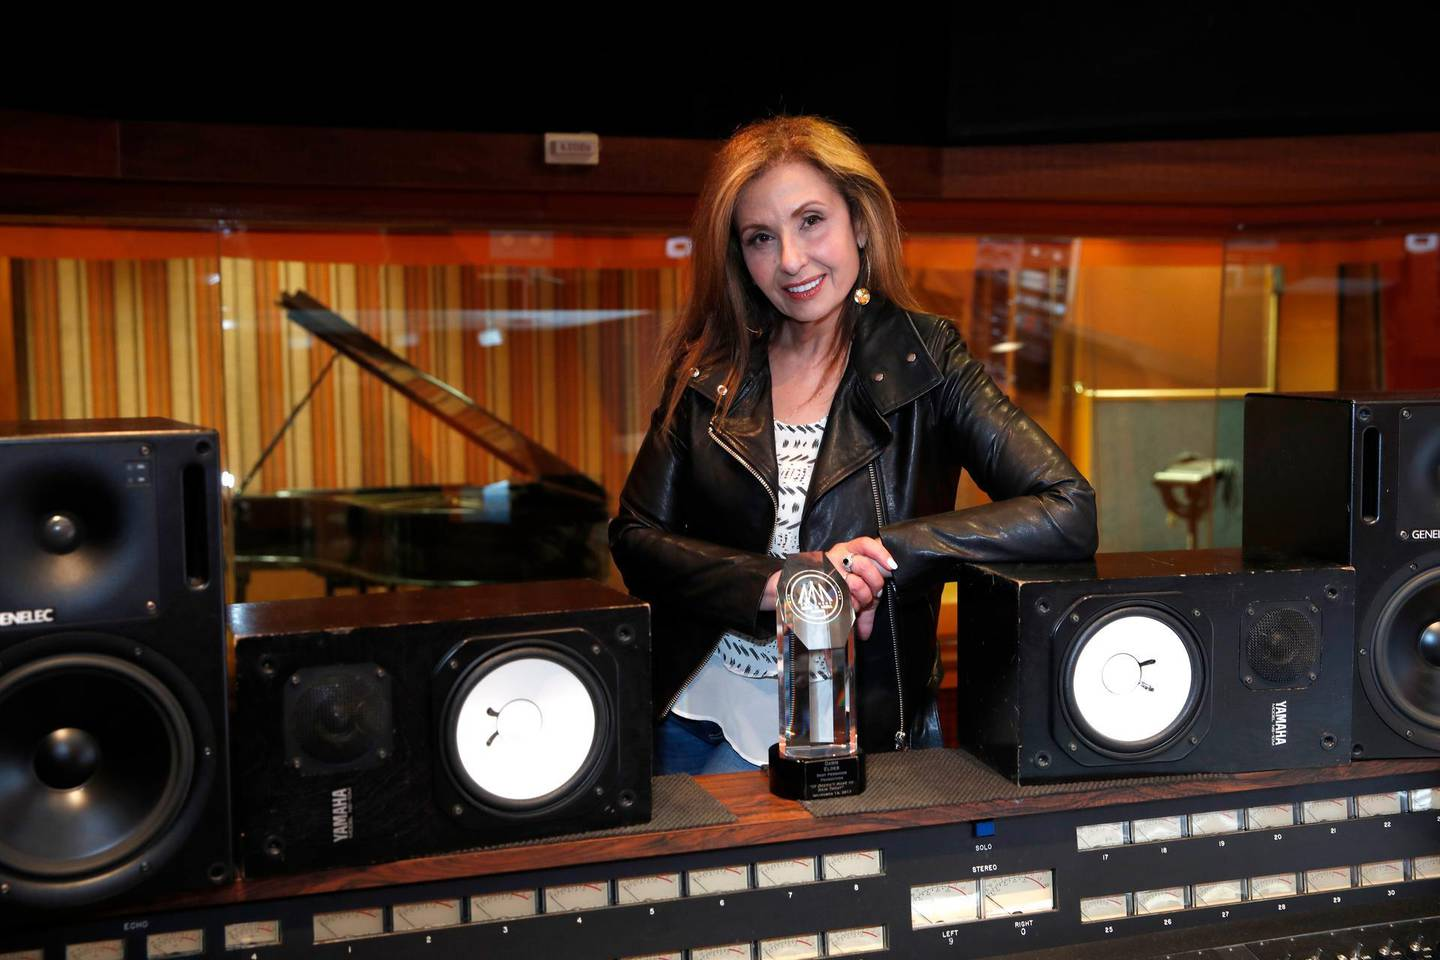 Lebanese producer Dawn Elder at the Sound Studio in Hollywood, California, USA 20 June 2018.